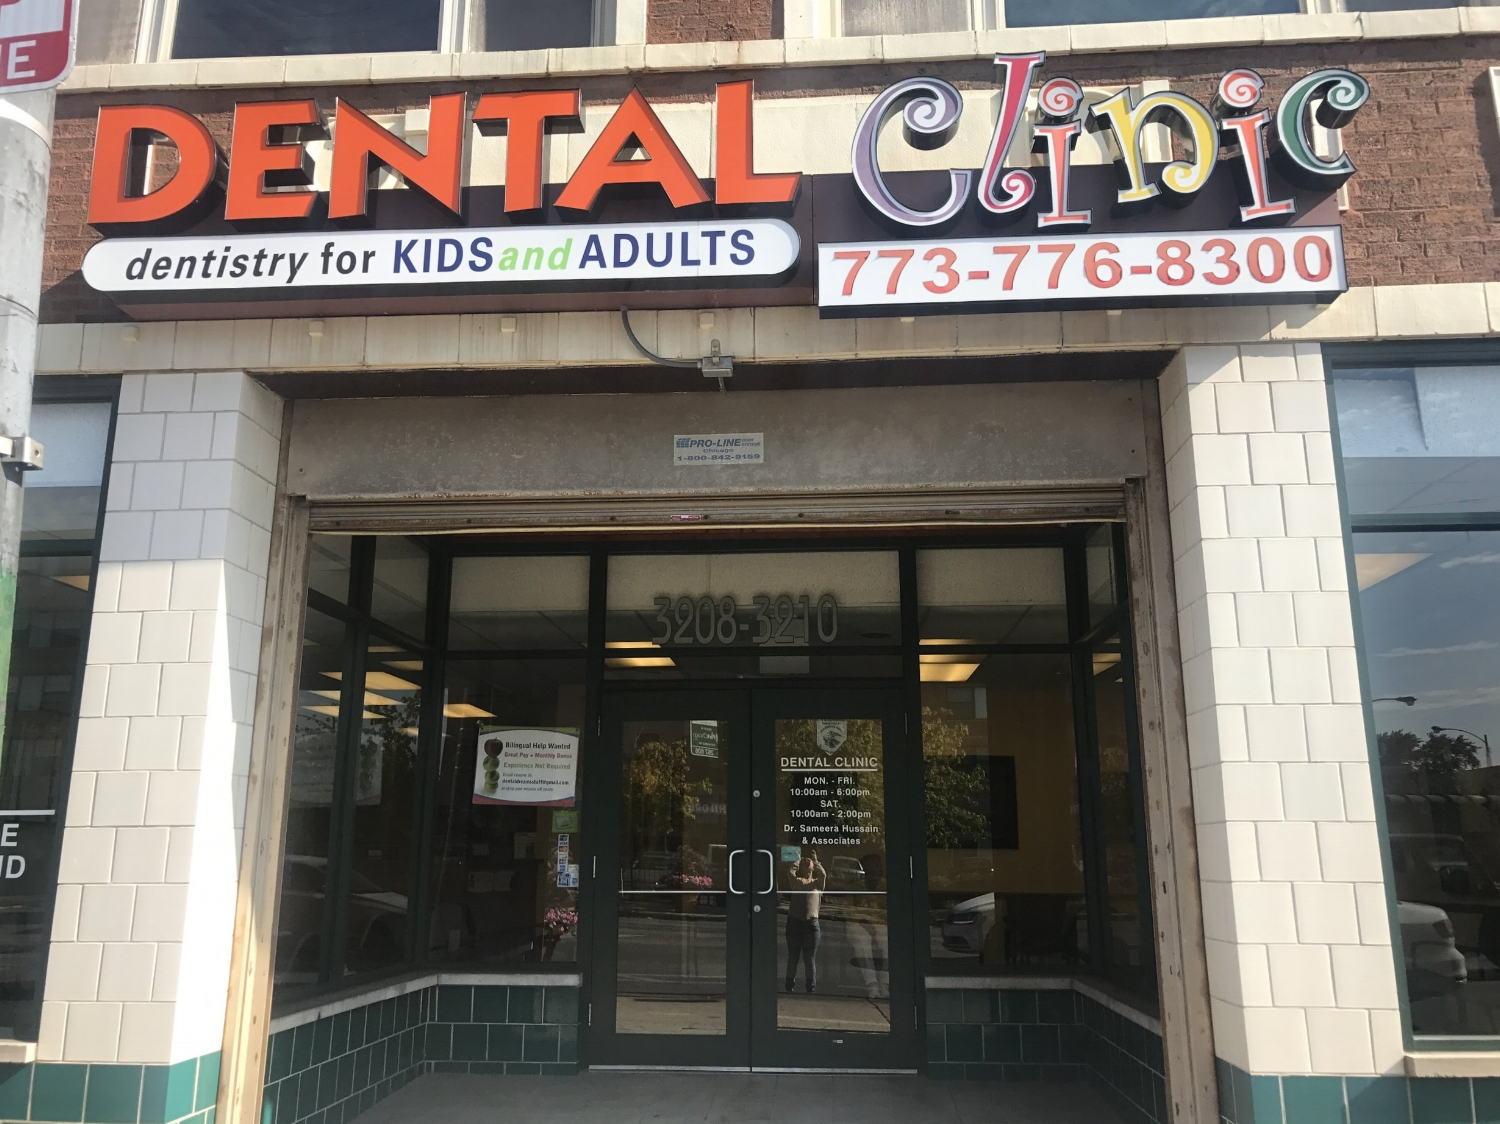 Photo of Dental Clinic in Chicago, IL 60629